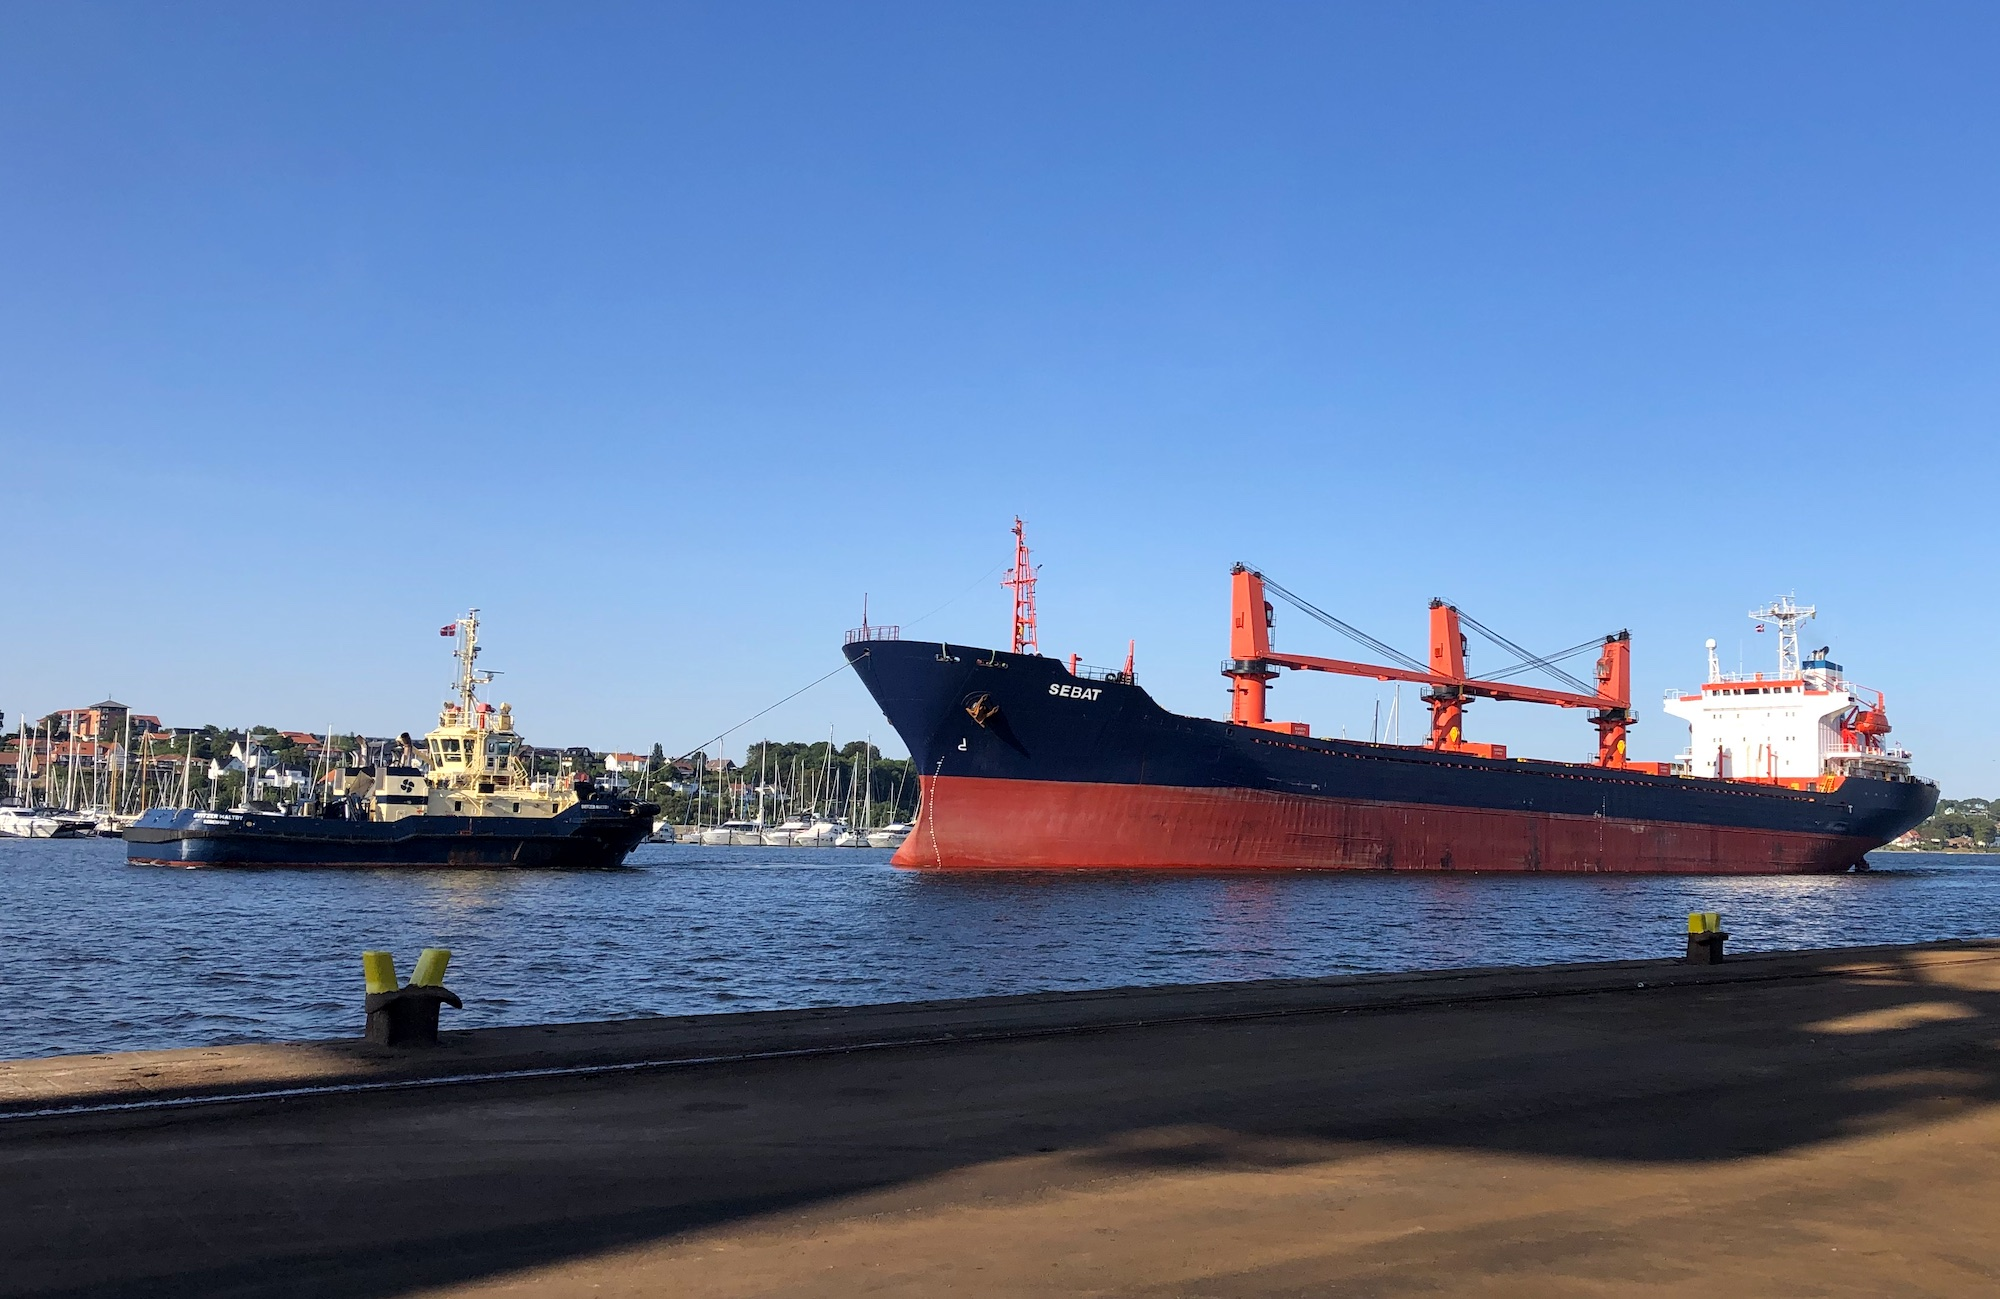 Shipping handy-sized freighters